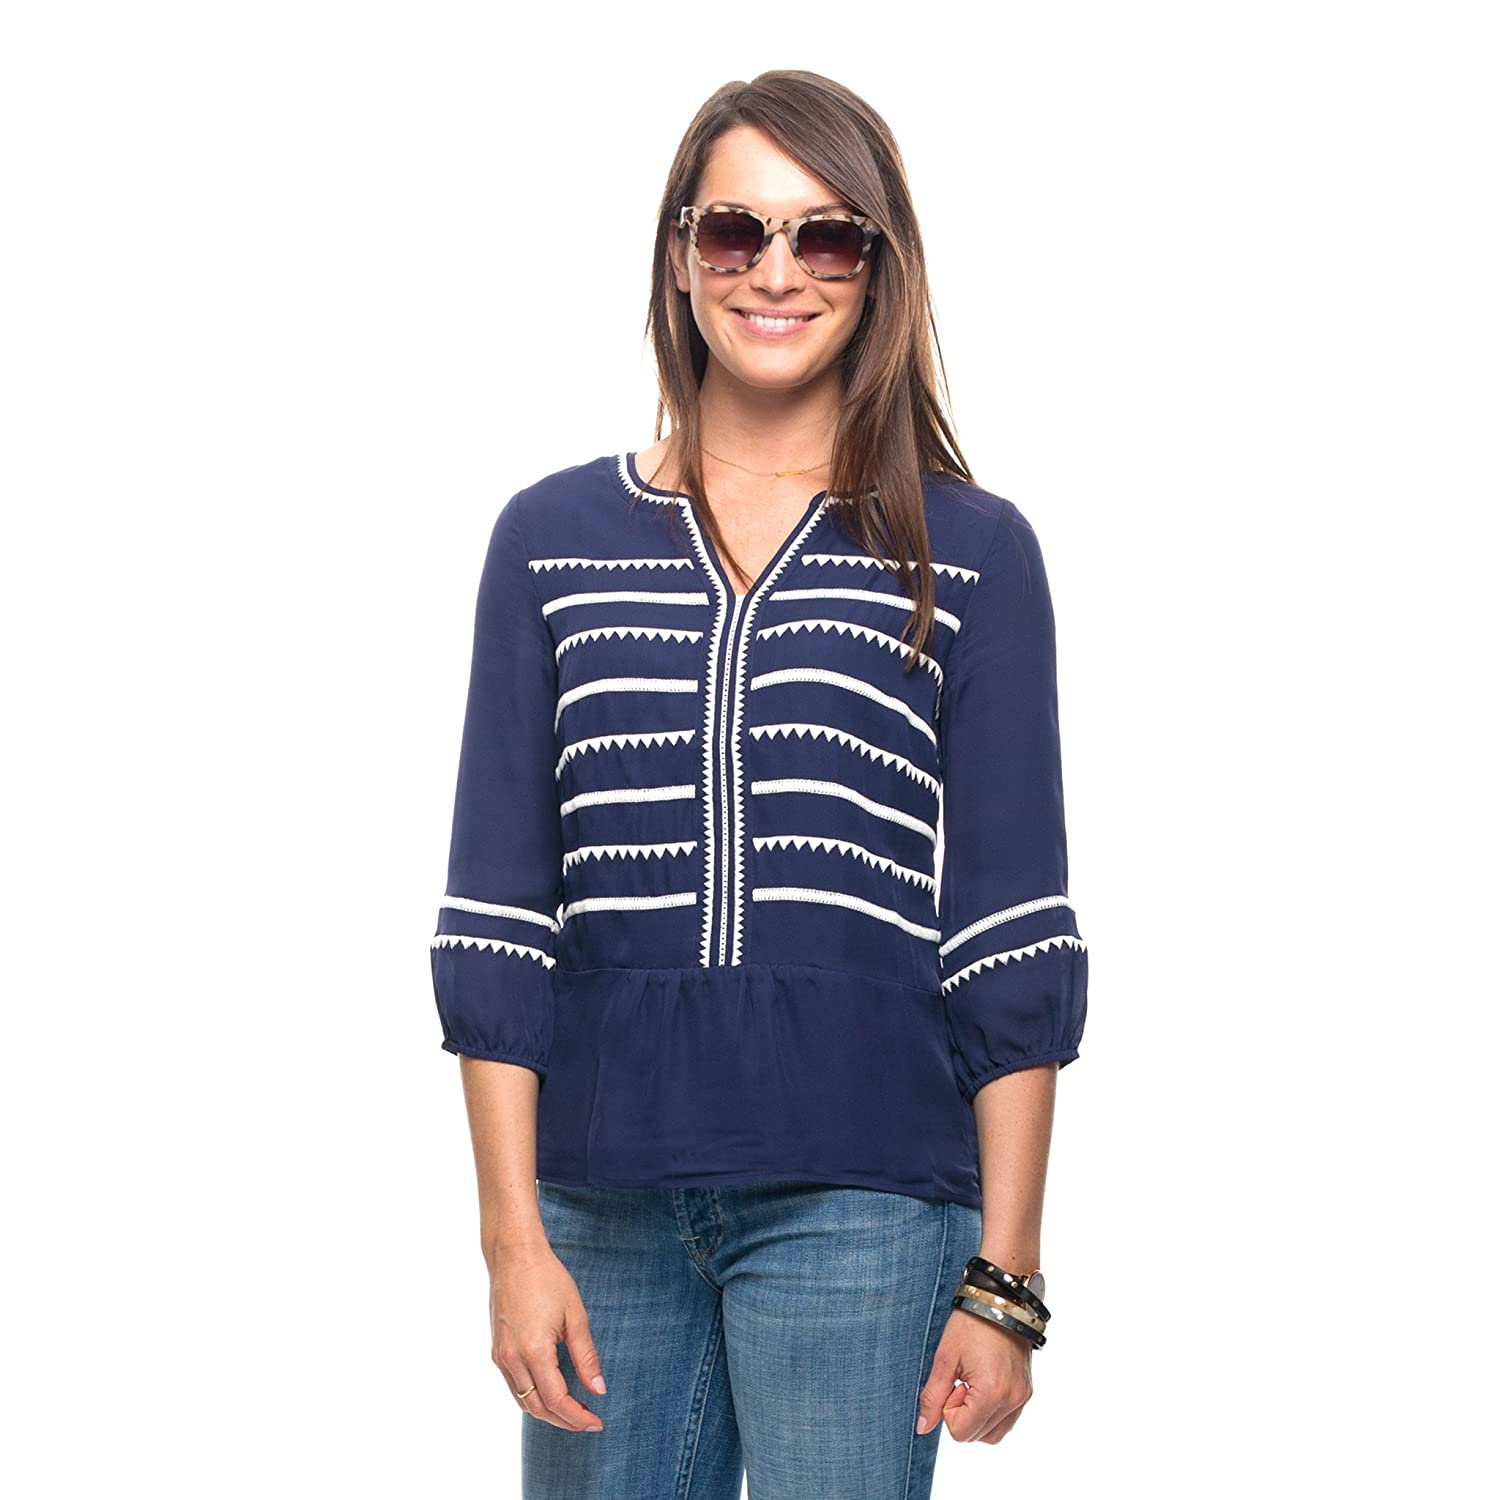 Vineyard Vines Women's Triangle Stripe Embroidered Top (Nautical Navy)